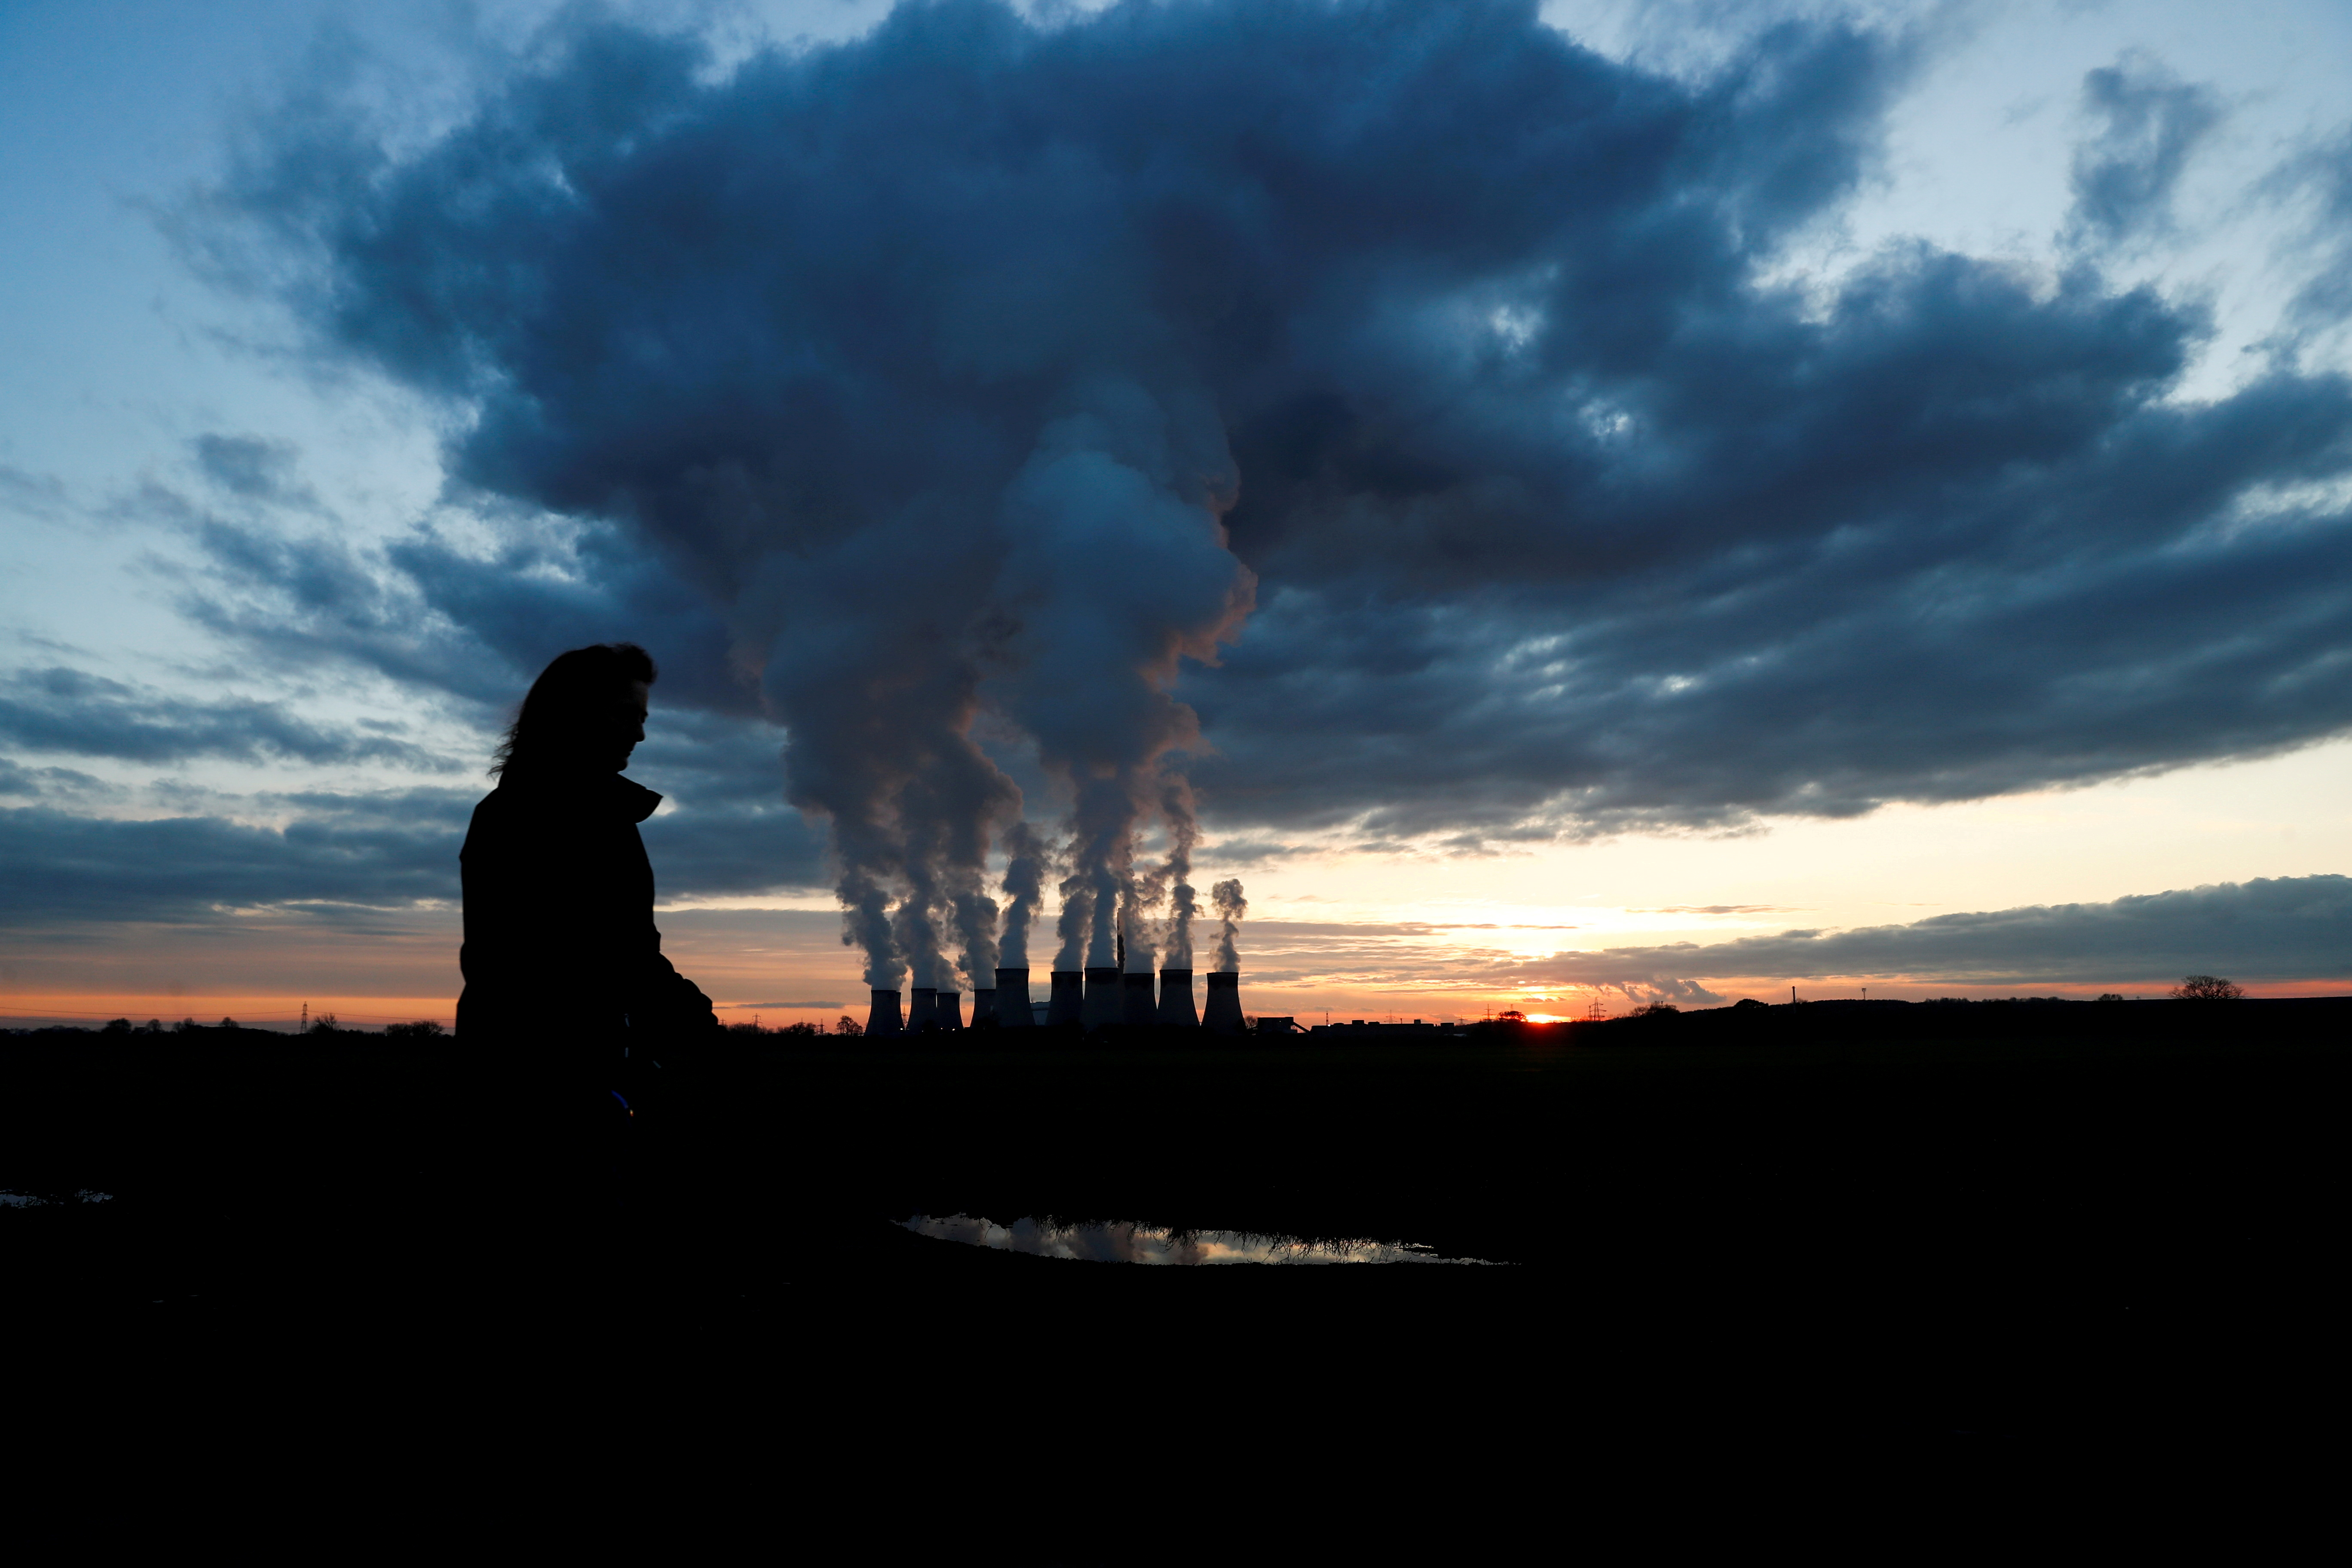 A woman walks a dog past Drax power station during the sunset in Drax, North Yorkshire, Britain, November 27, 2020. REUTERS/Lee Smith